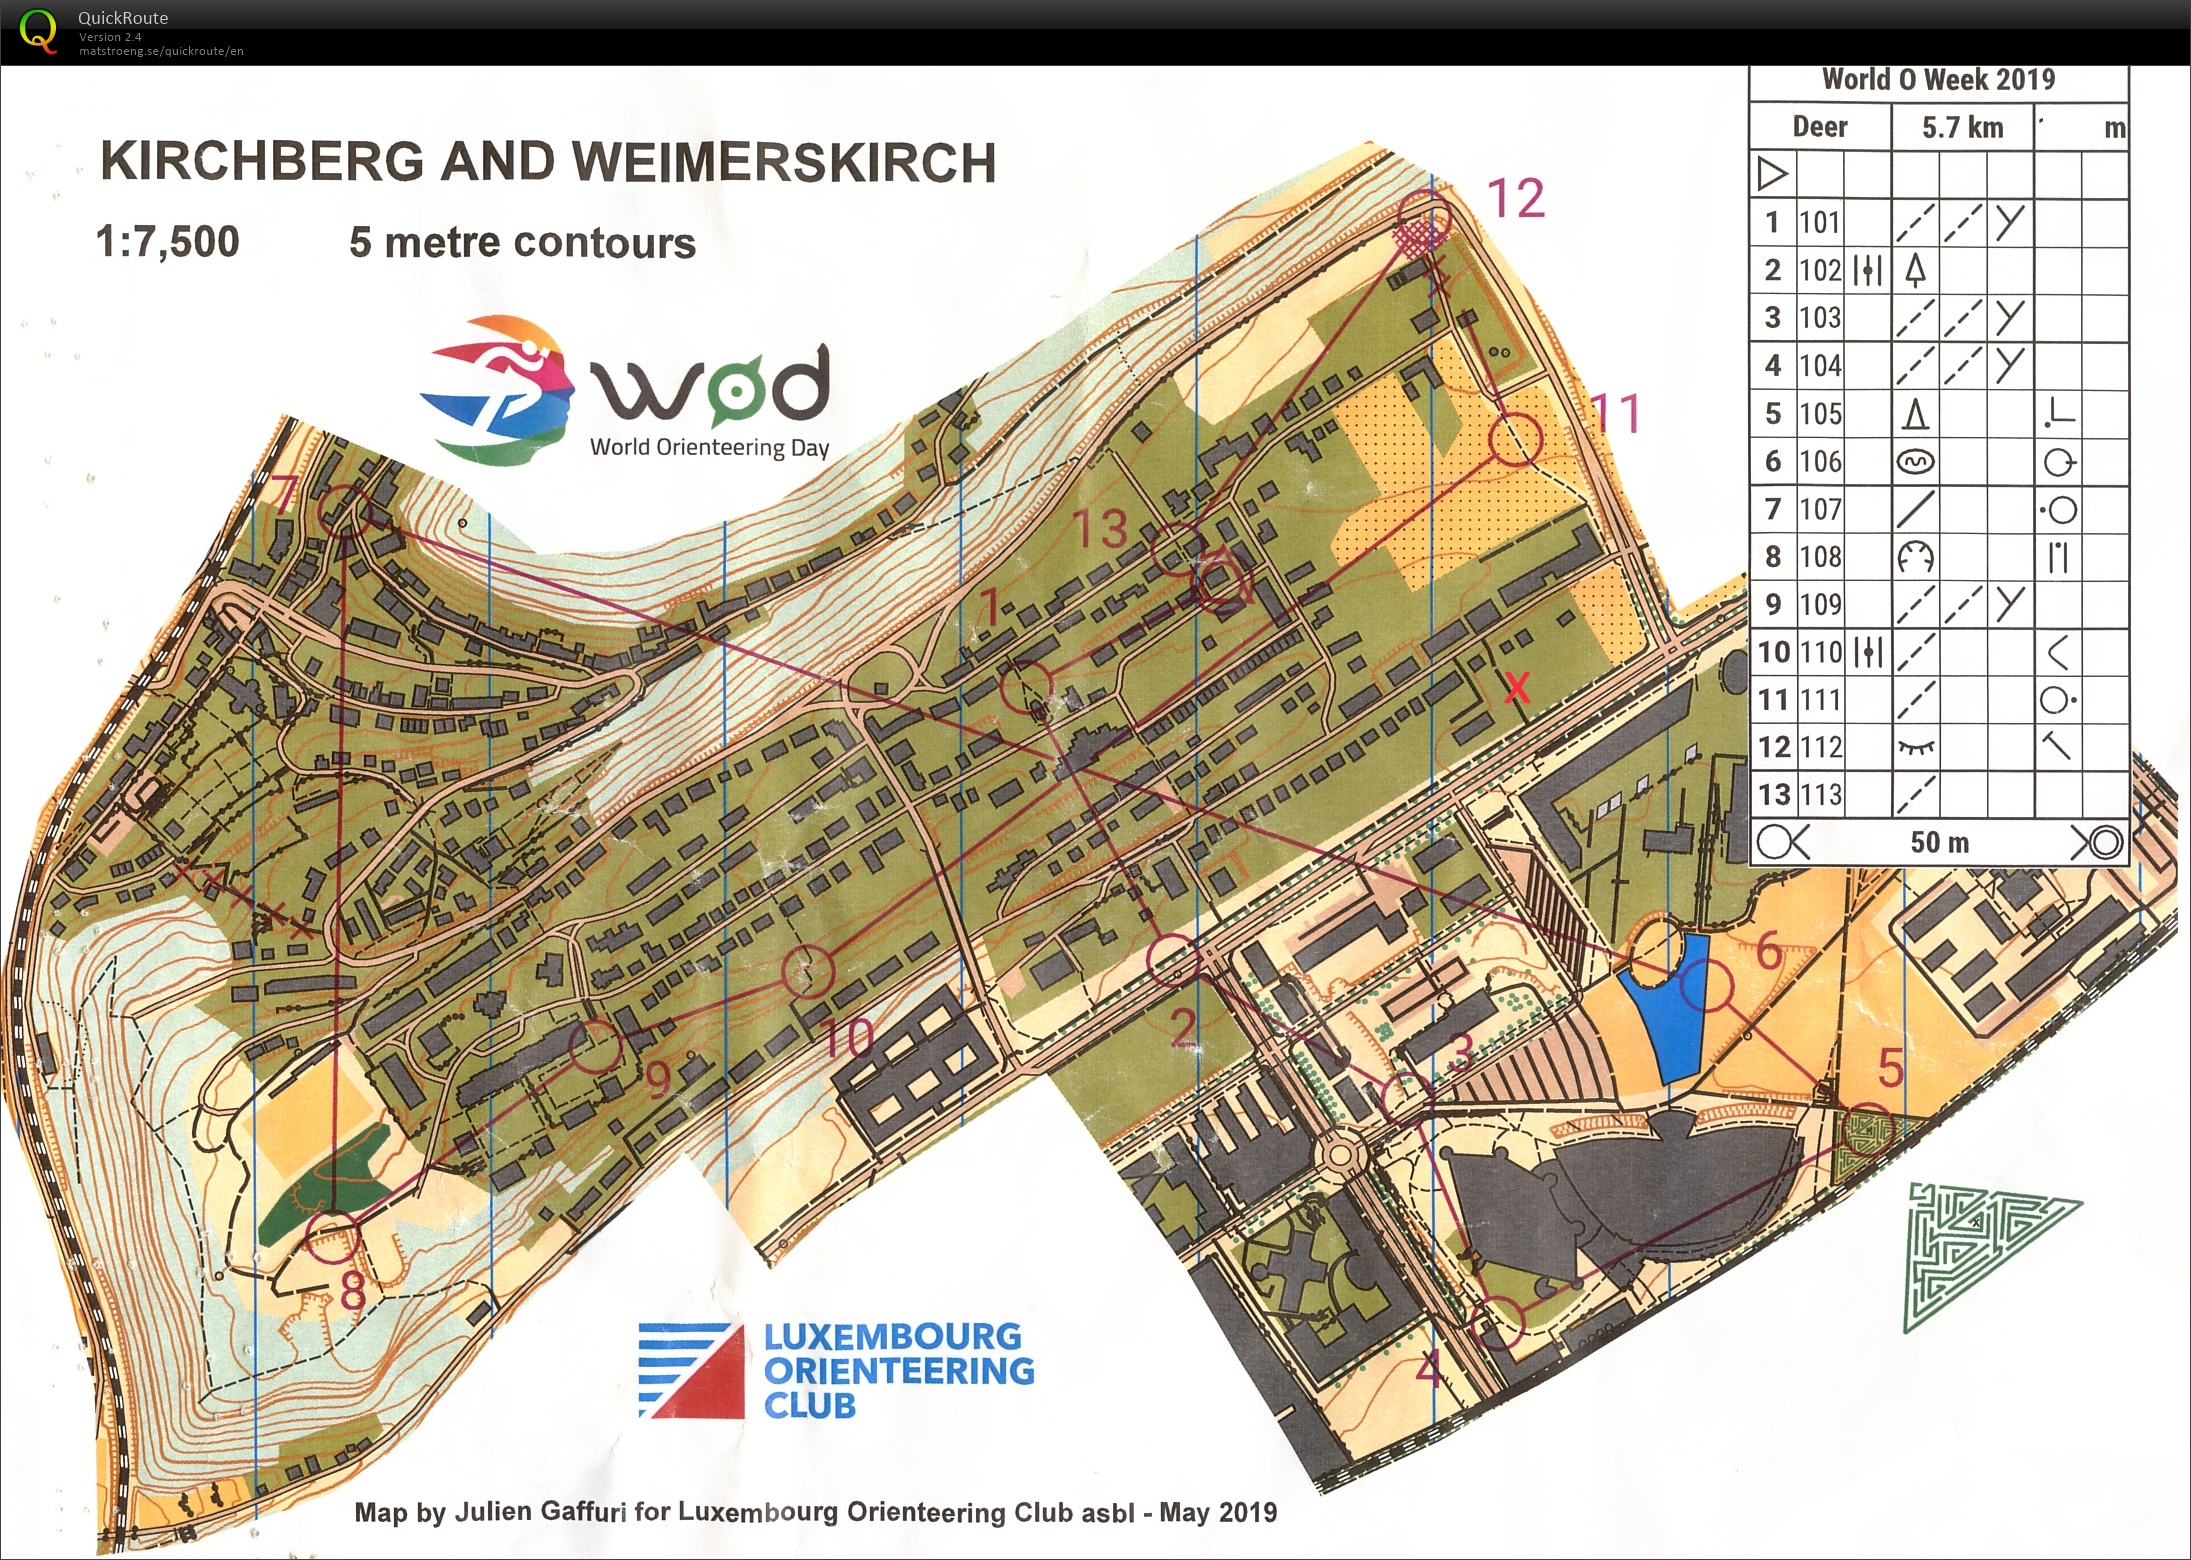 World Orienteering Day (16.05.2019)